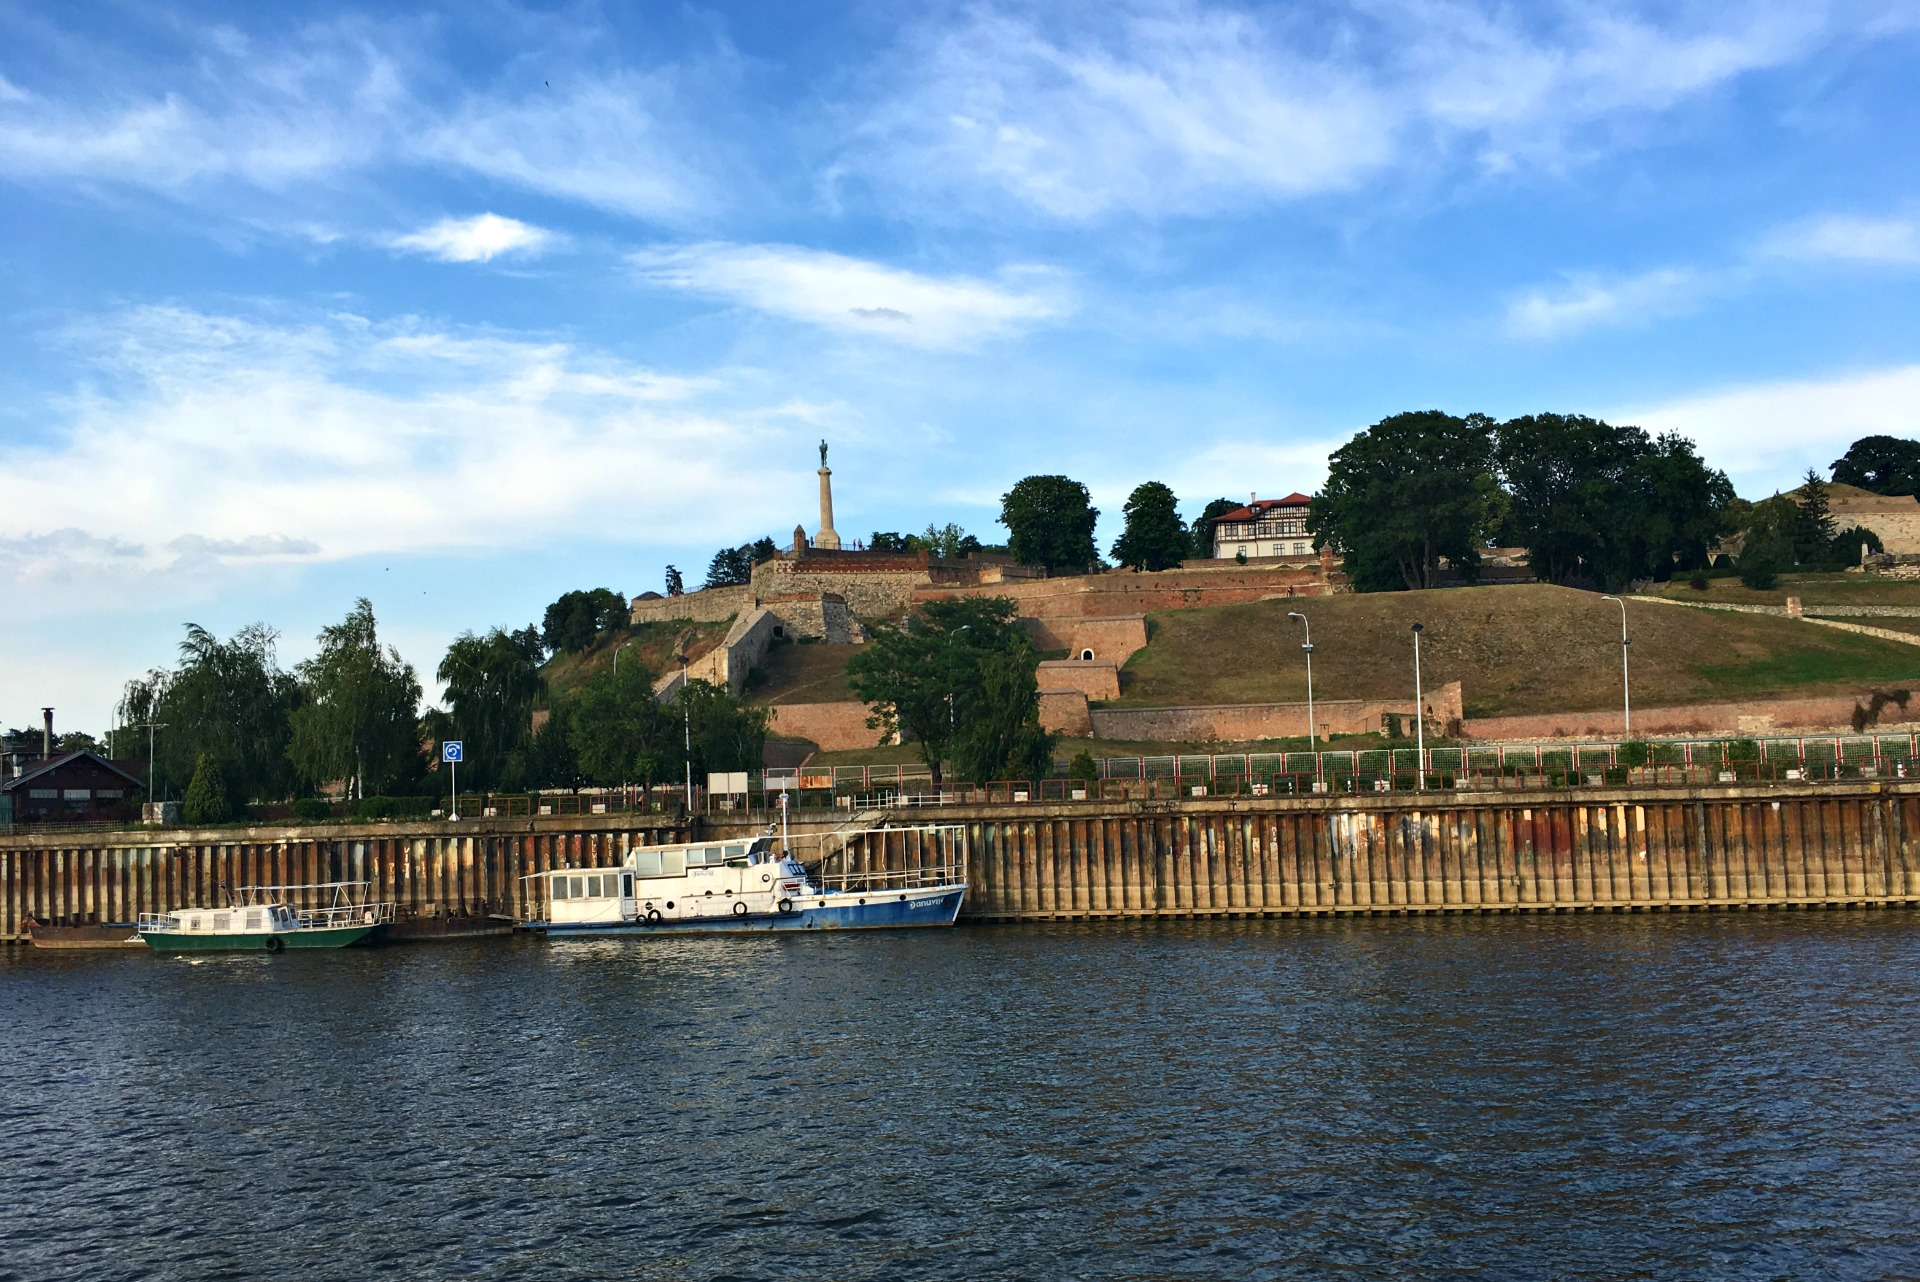 View of the Belgrade Fortress from the Danube River cruise